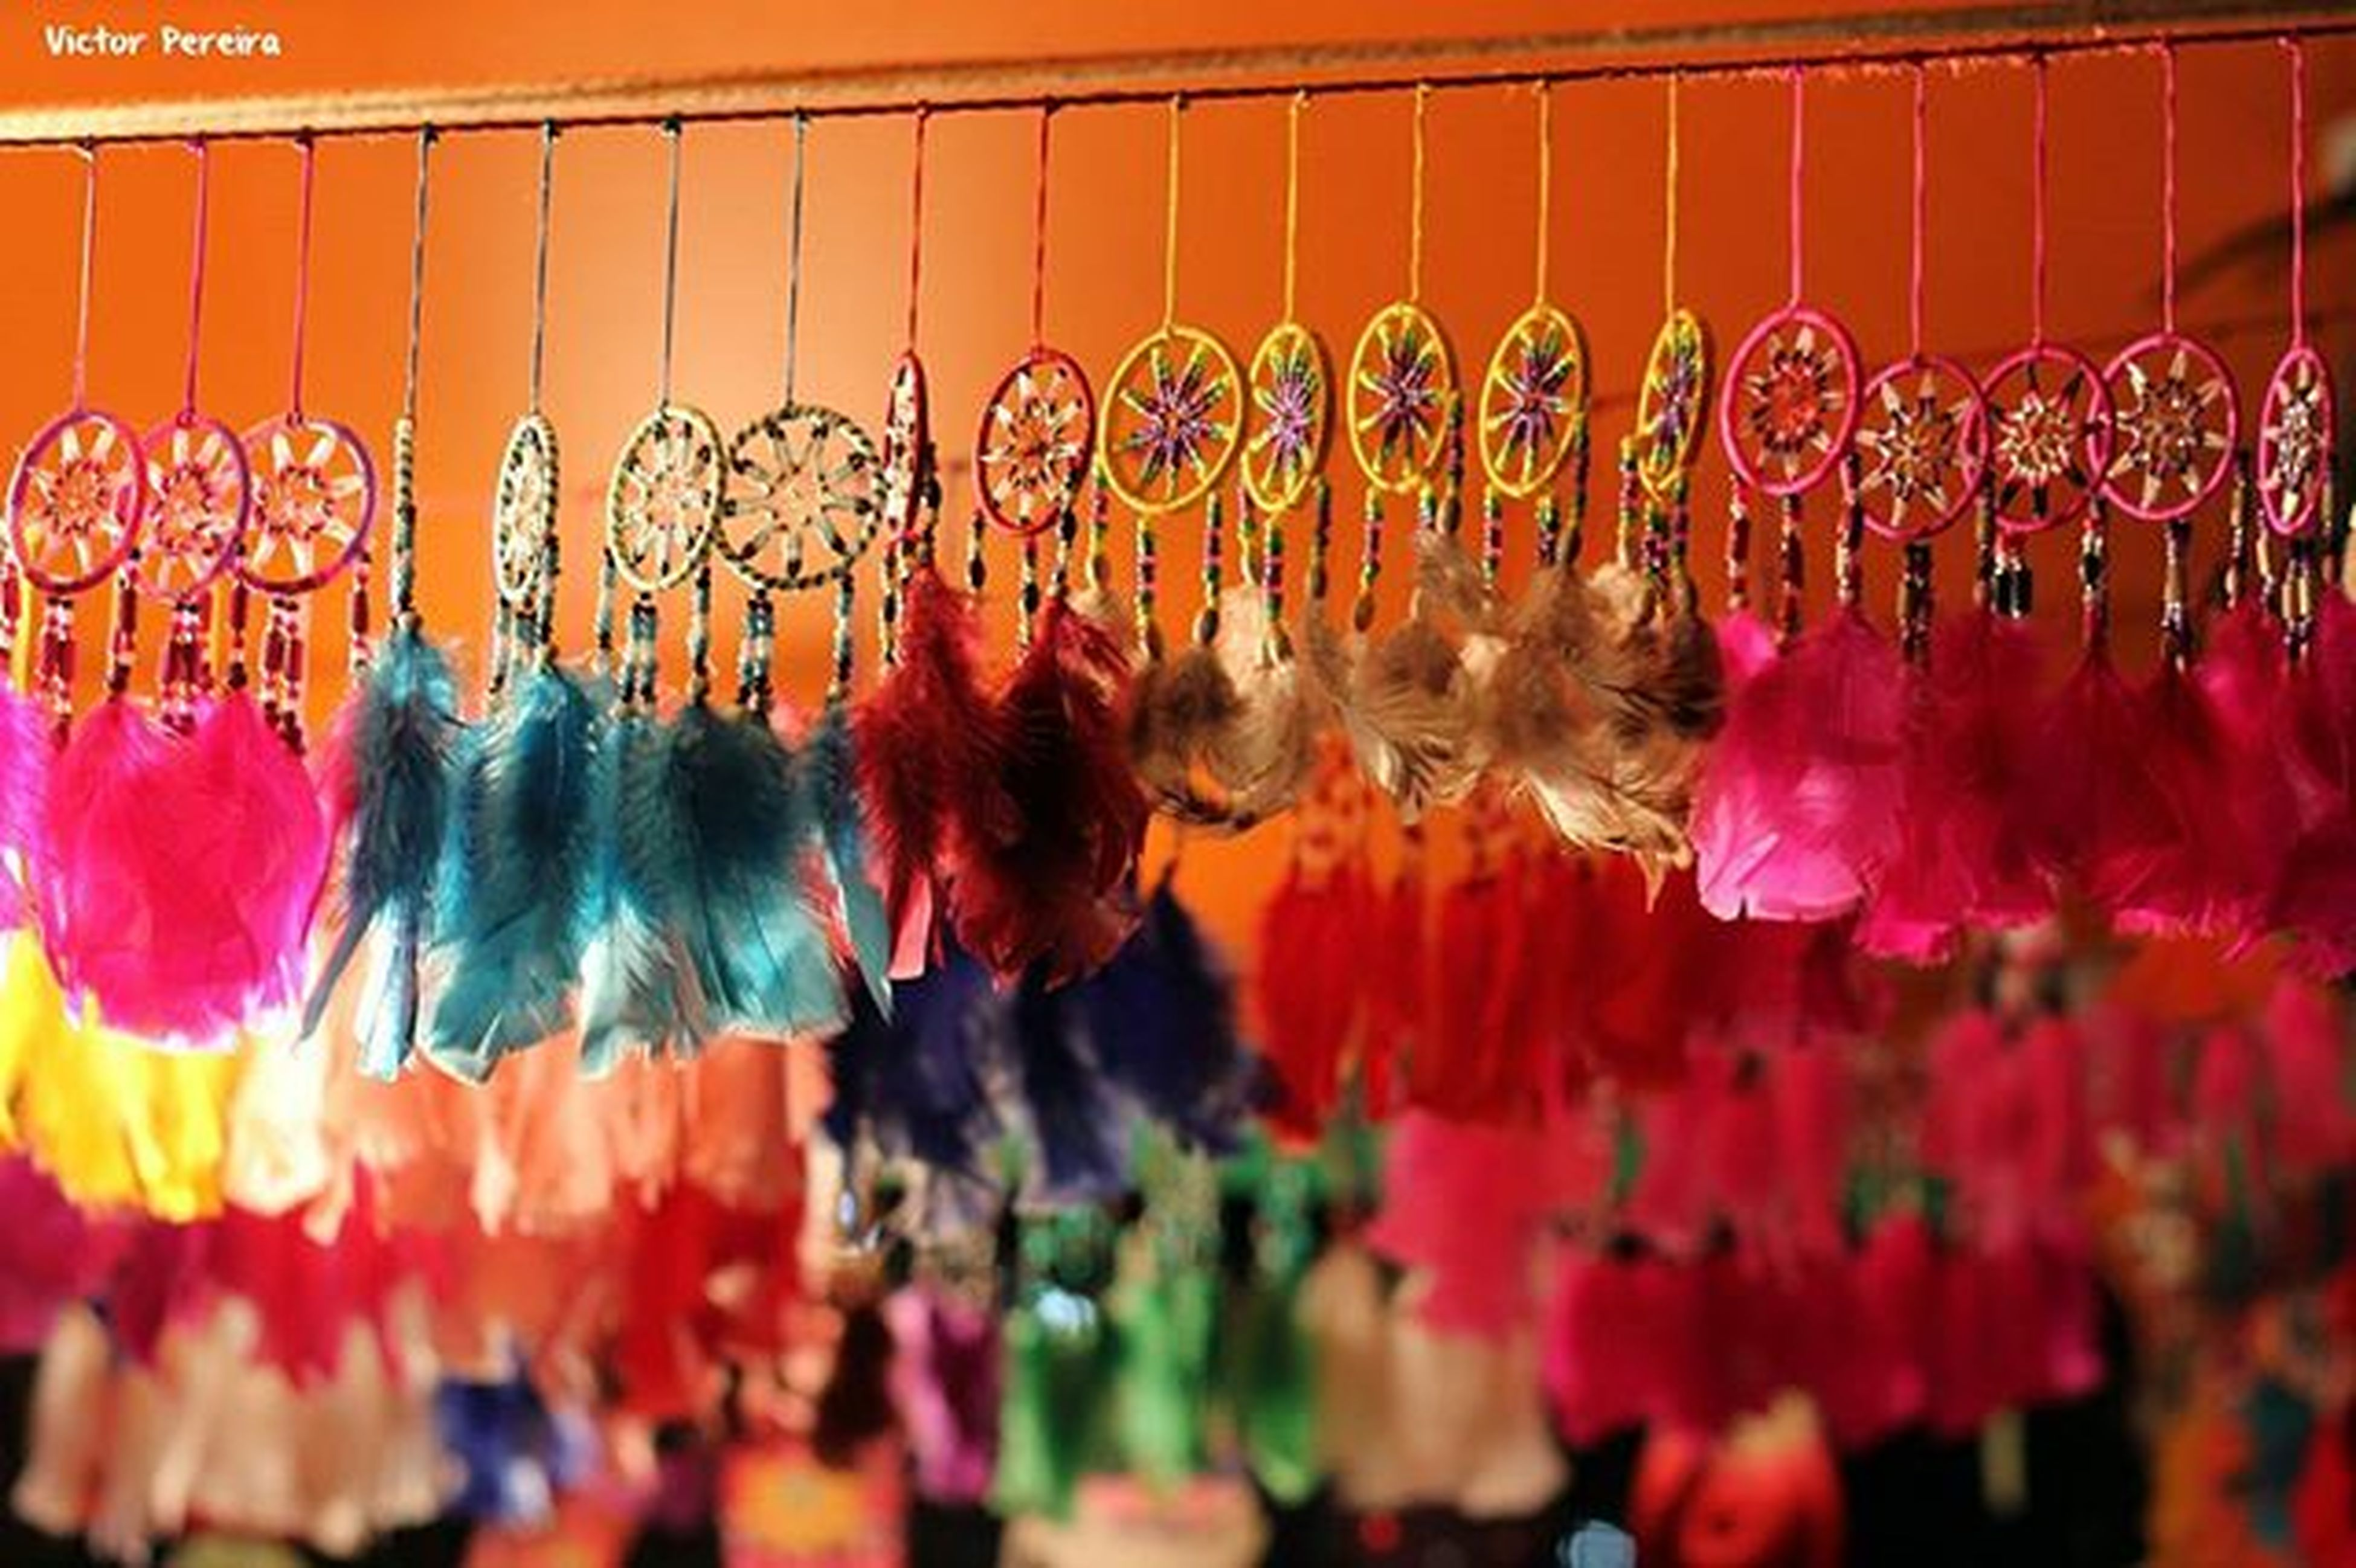 indoors, multi colored, variation, abundance, celebration, large group of objects, choice, tradition, in a row, cultures, hanging, retail, illuminated, for sale, market stall, art and craft, decoration, selective focus, religion, arts culture and entertainment